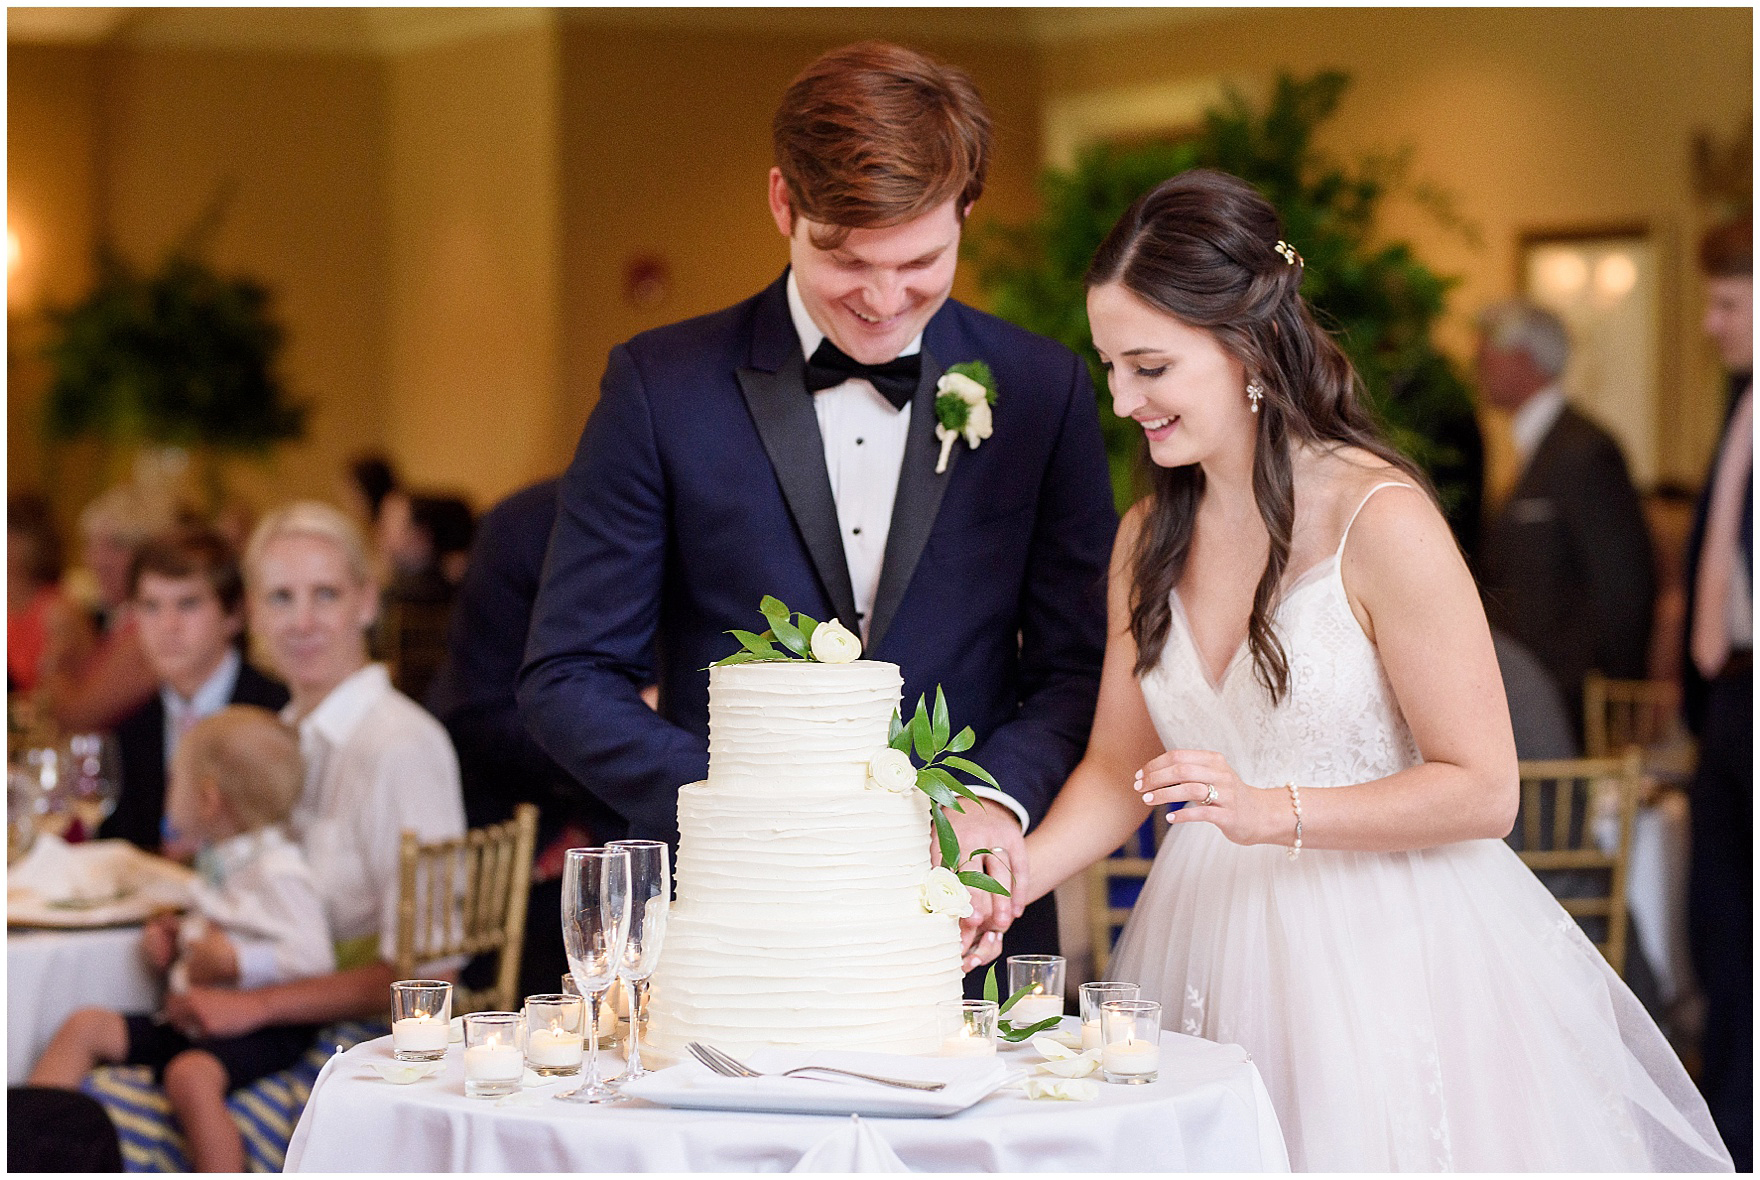 The bride and groom cut their cake by Toni Patisserie during a Butterfield Country Club wedding.